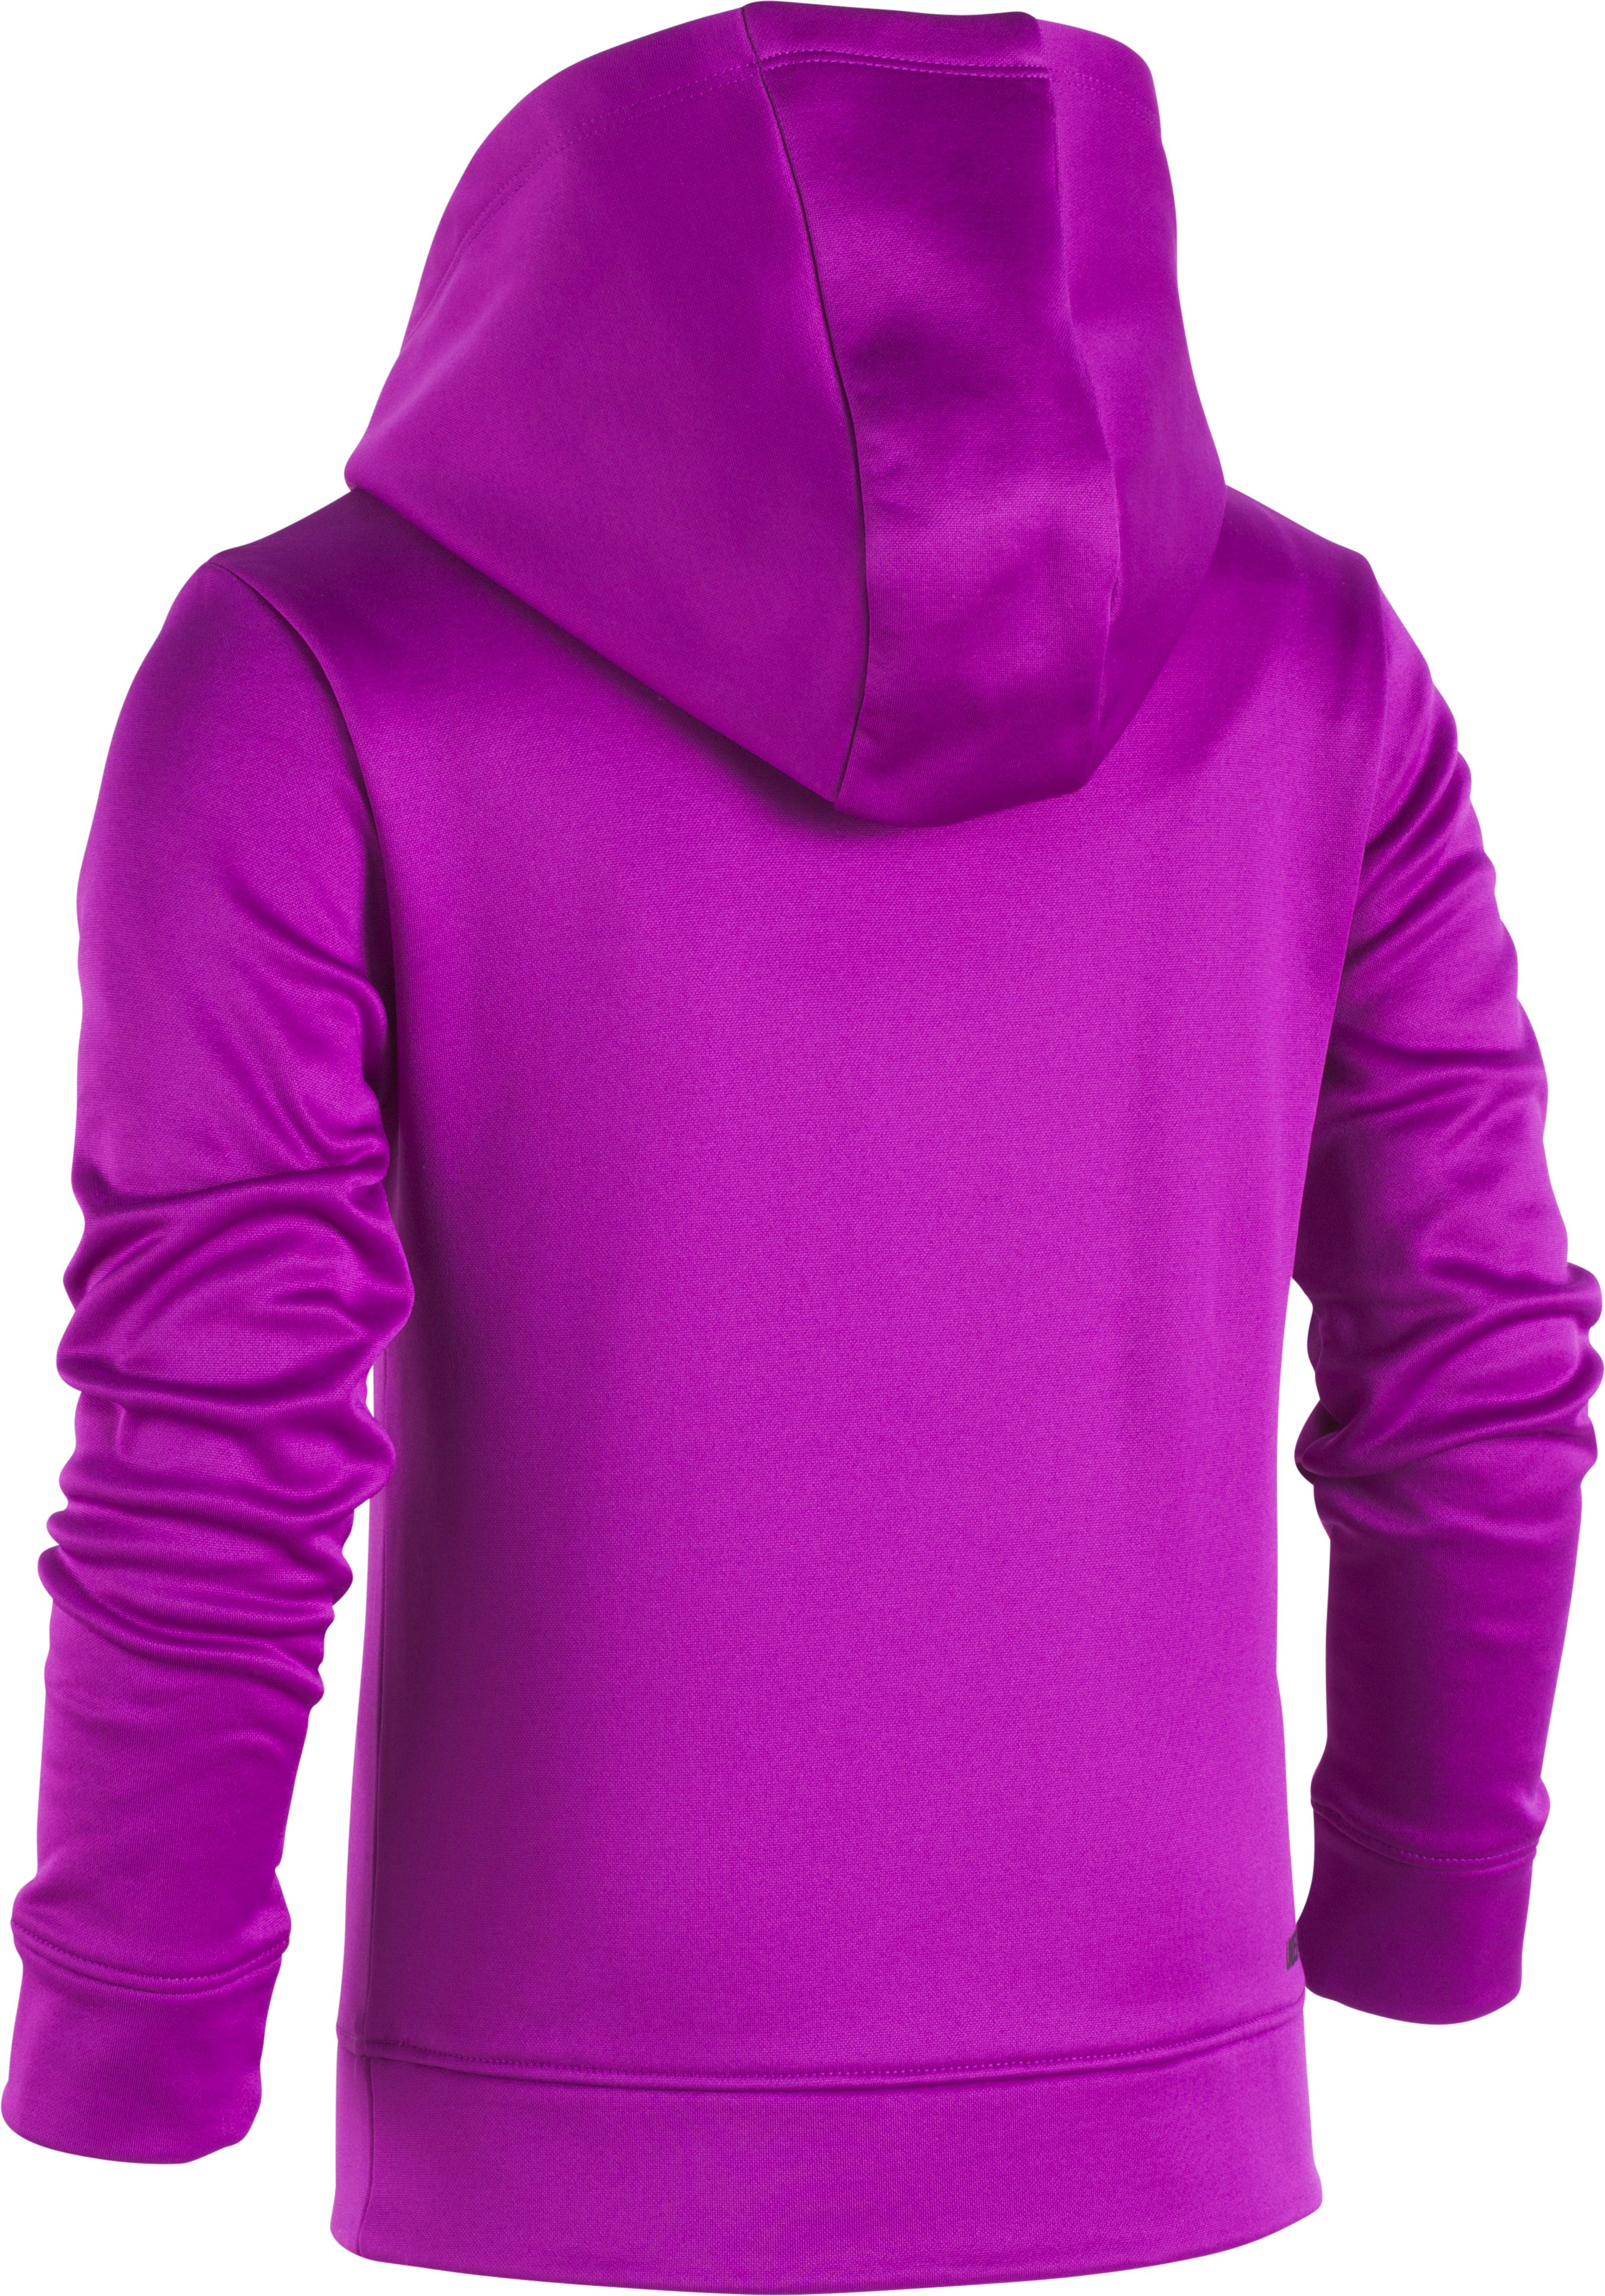 Girls' Pre-School UA Rush Big Logo Hoodie, PURPLE RAVE